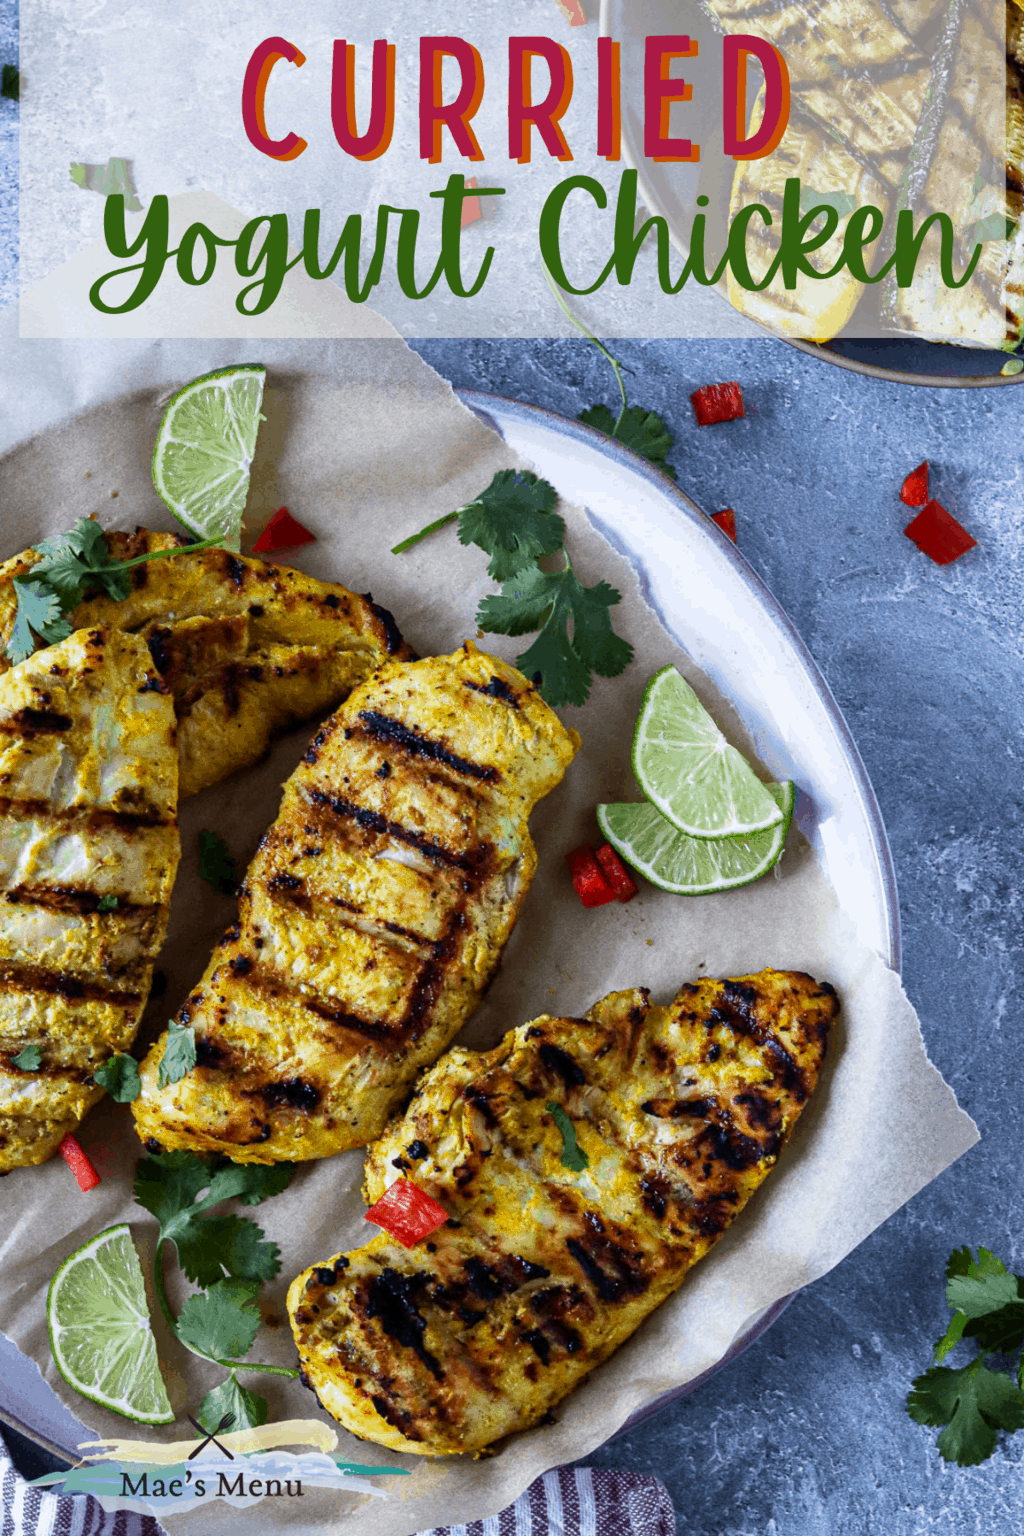 A pinterest pin for Yogurt grilled chicken with an overhead shot of a plate of the grilled chicken